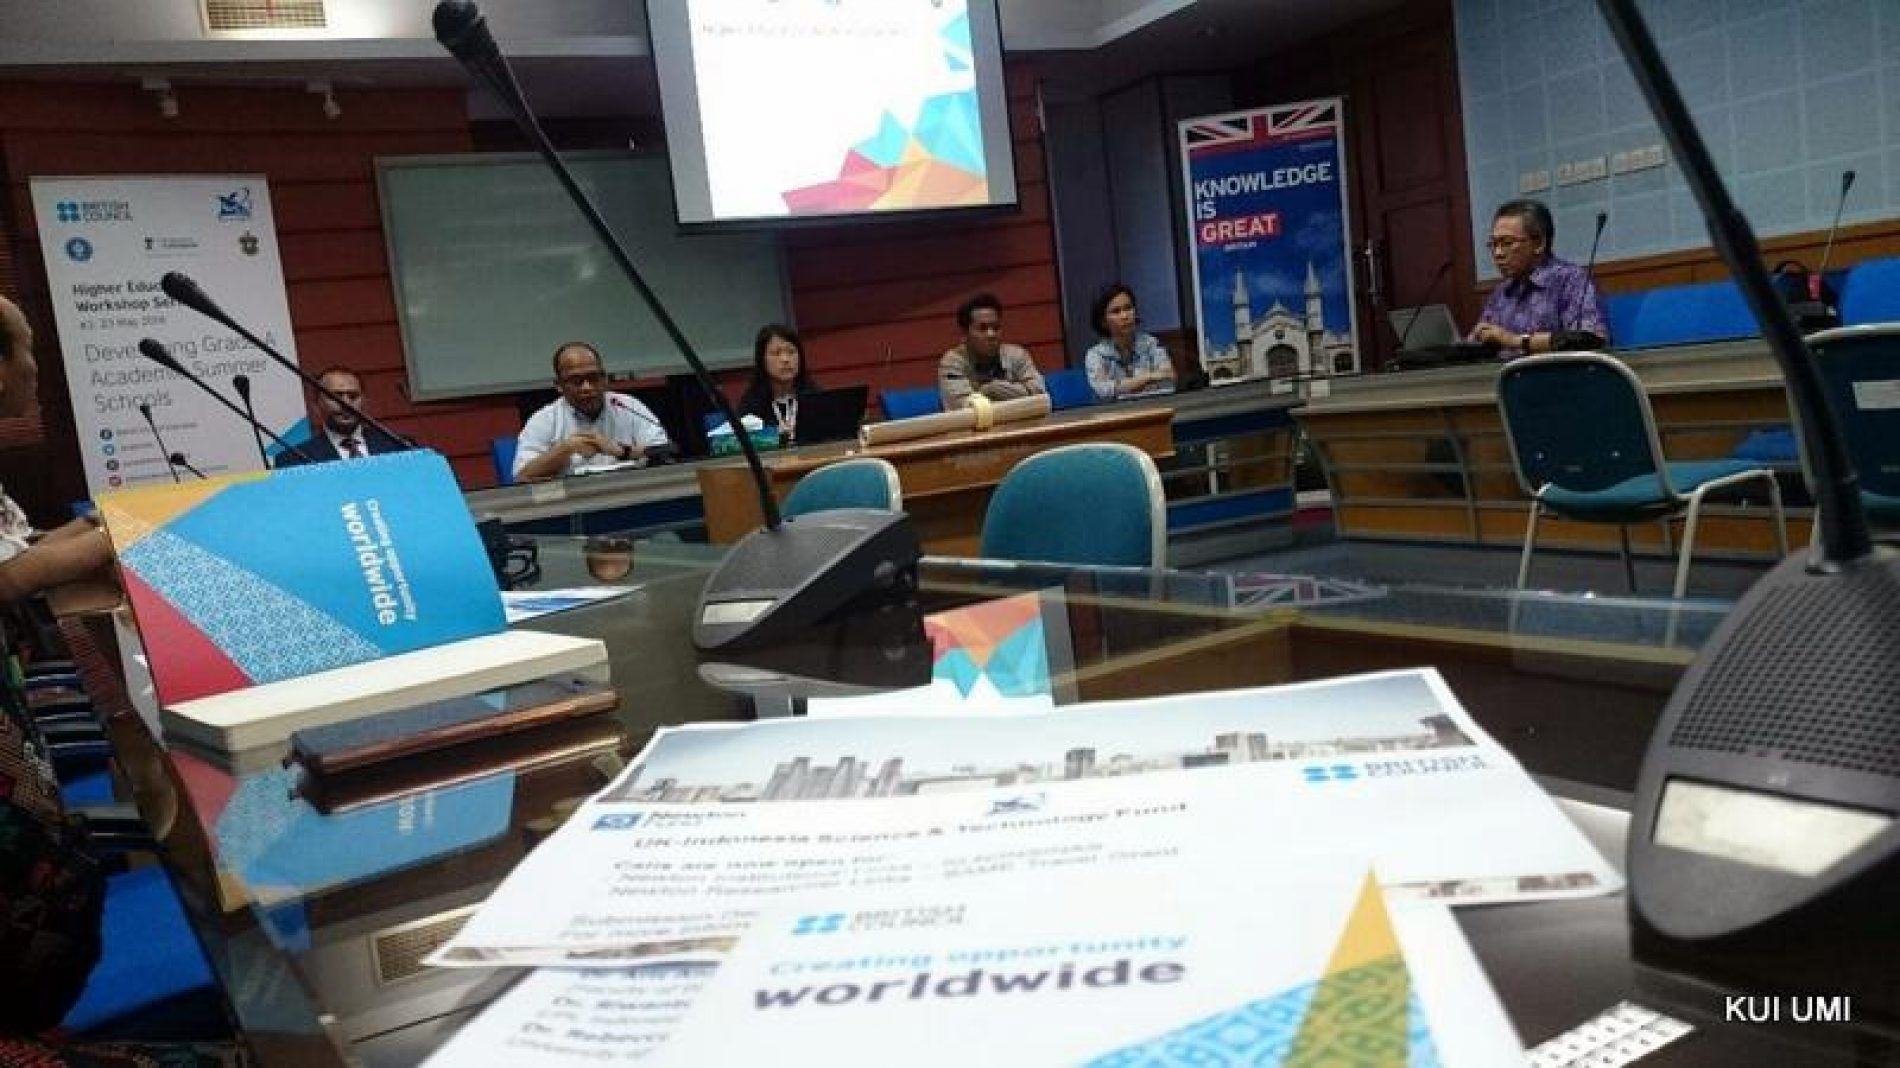 The International Office of UMI Joins British Council's Workshop